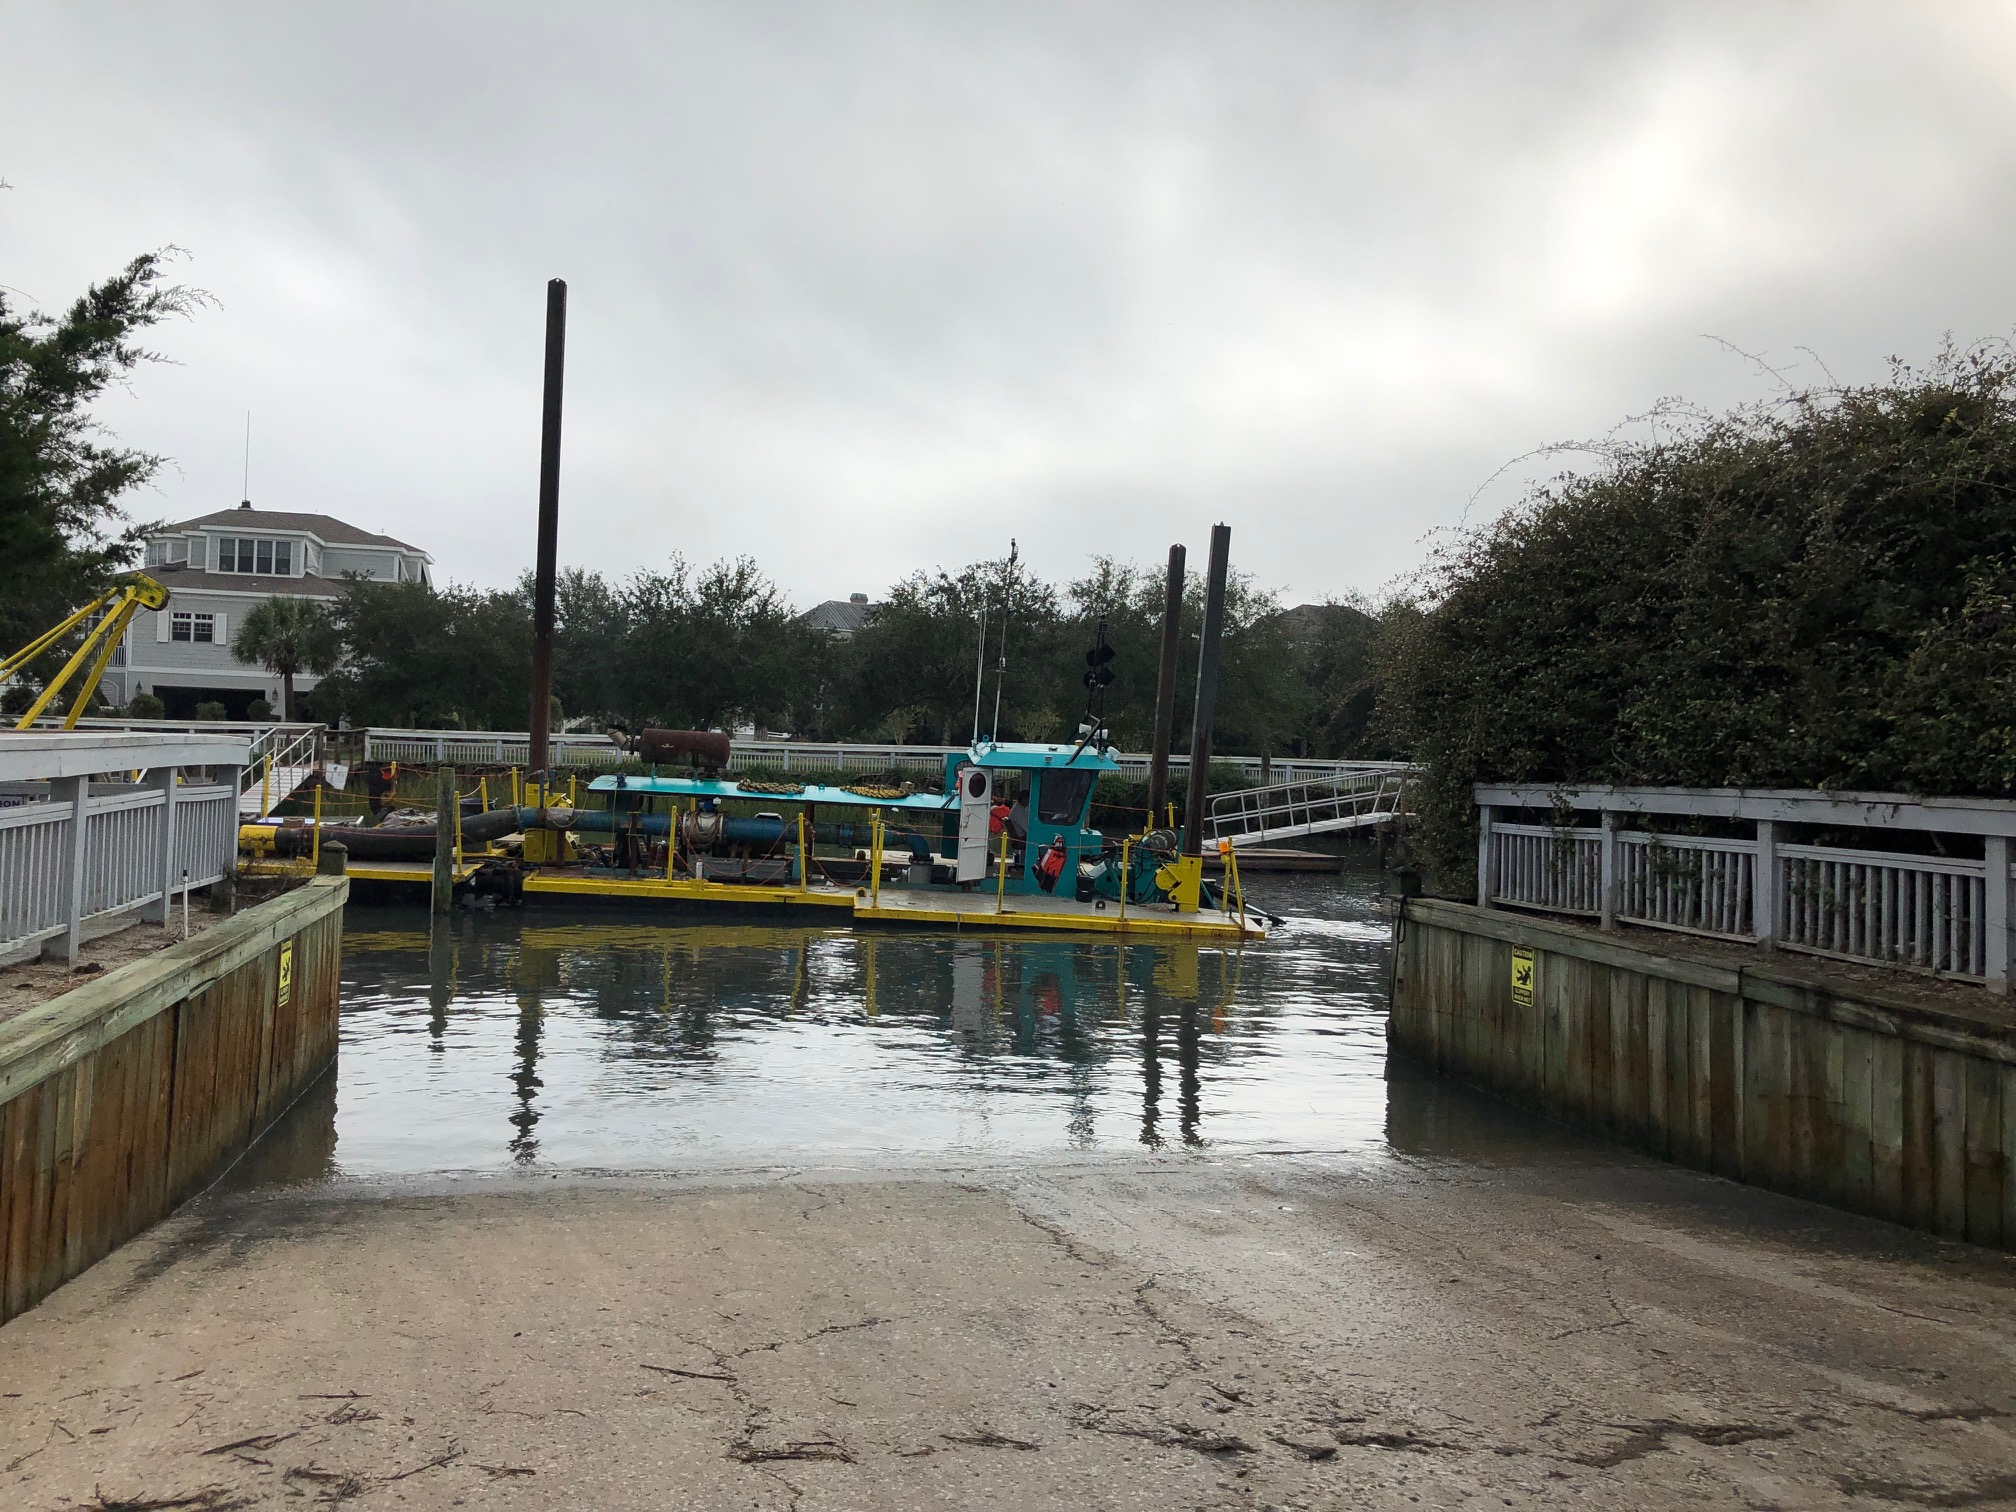 Canal Dredging Update – Tuesday 10/30/18